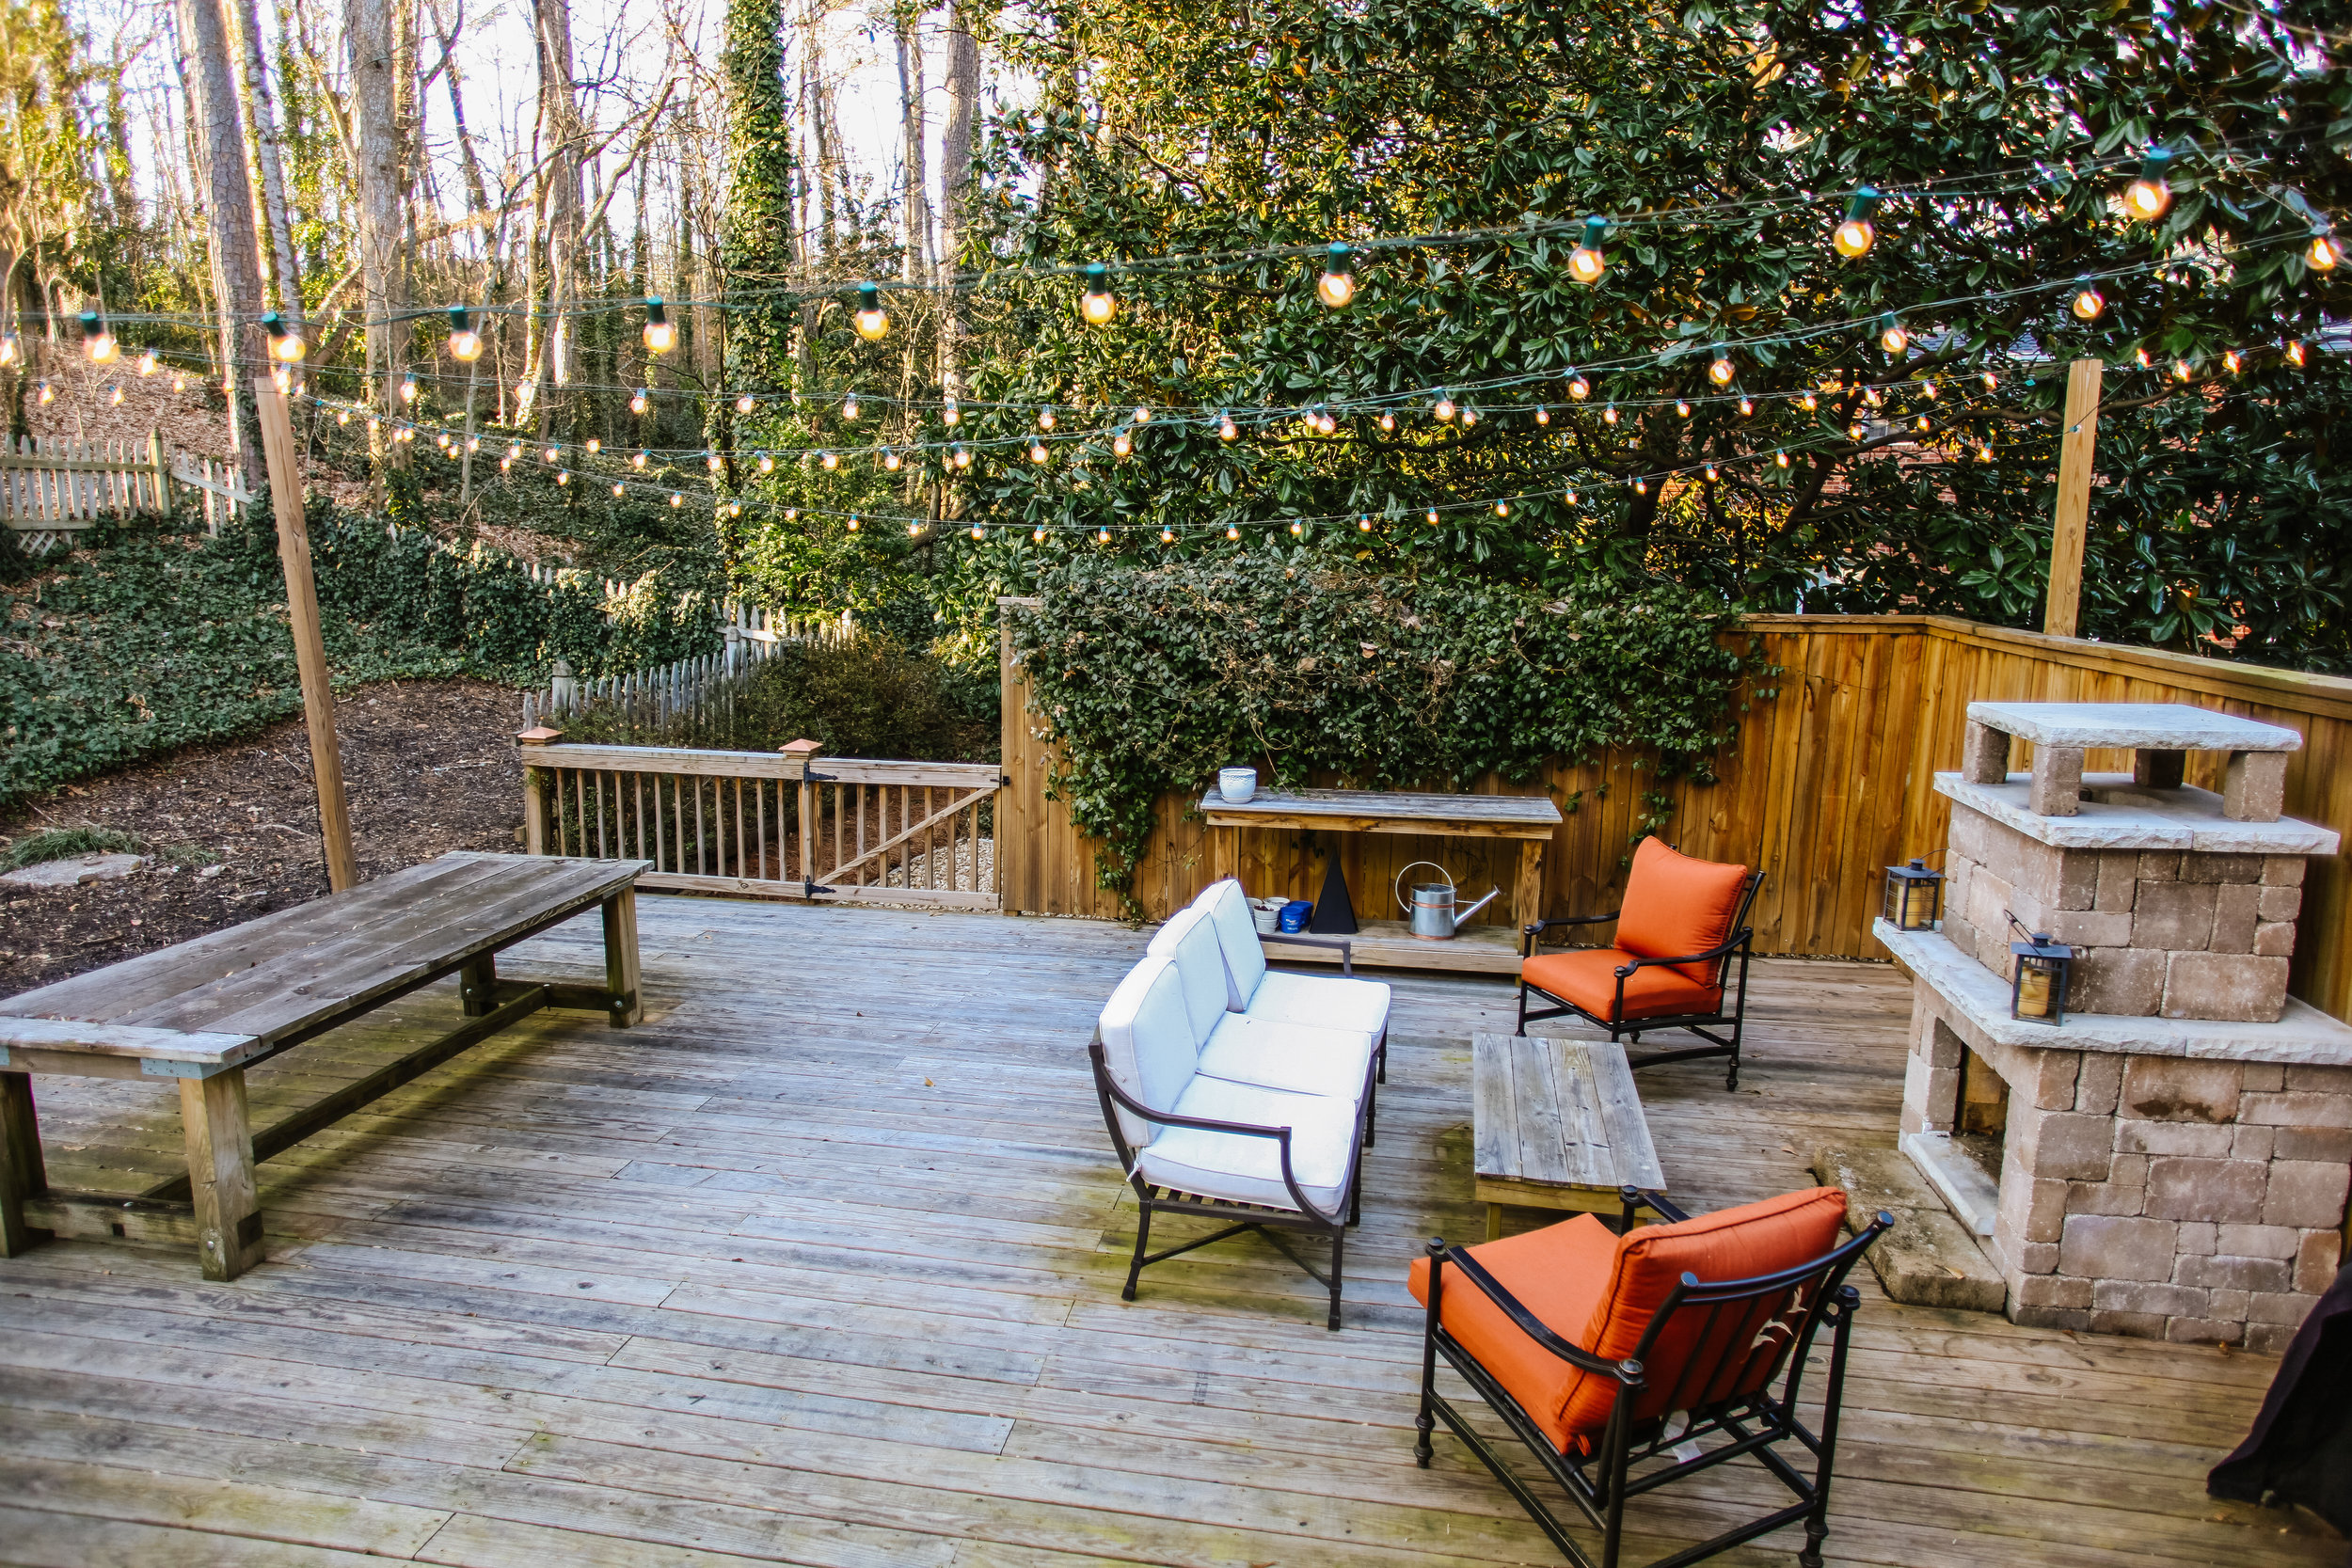 wingard-real-estate-sandy-springs-dream-home-backyard-goals-atlanta-buckhead-85.jpg